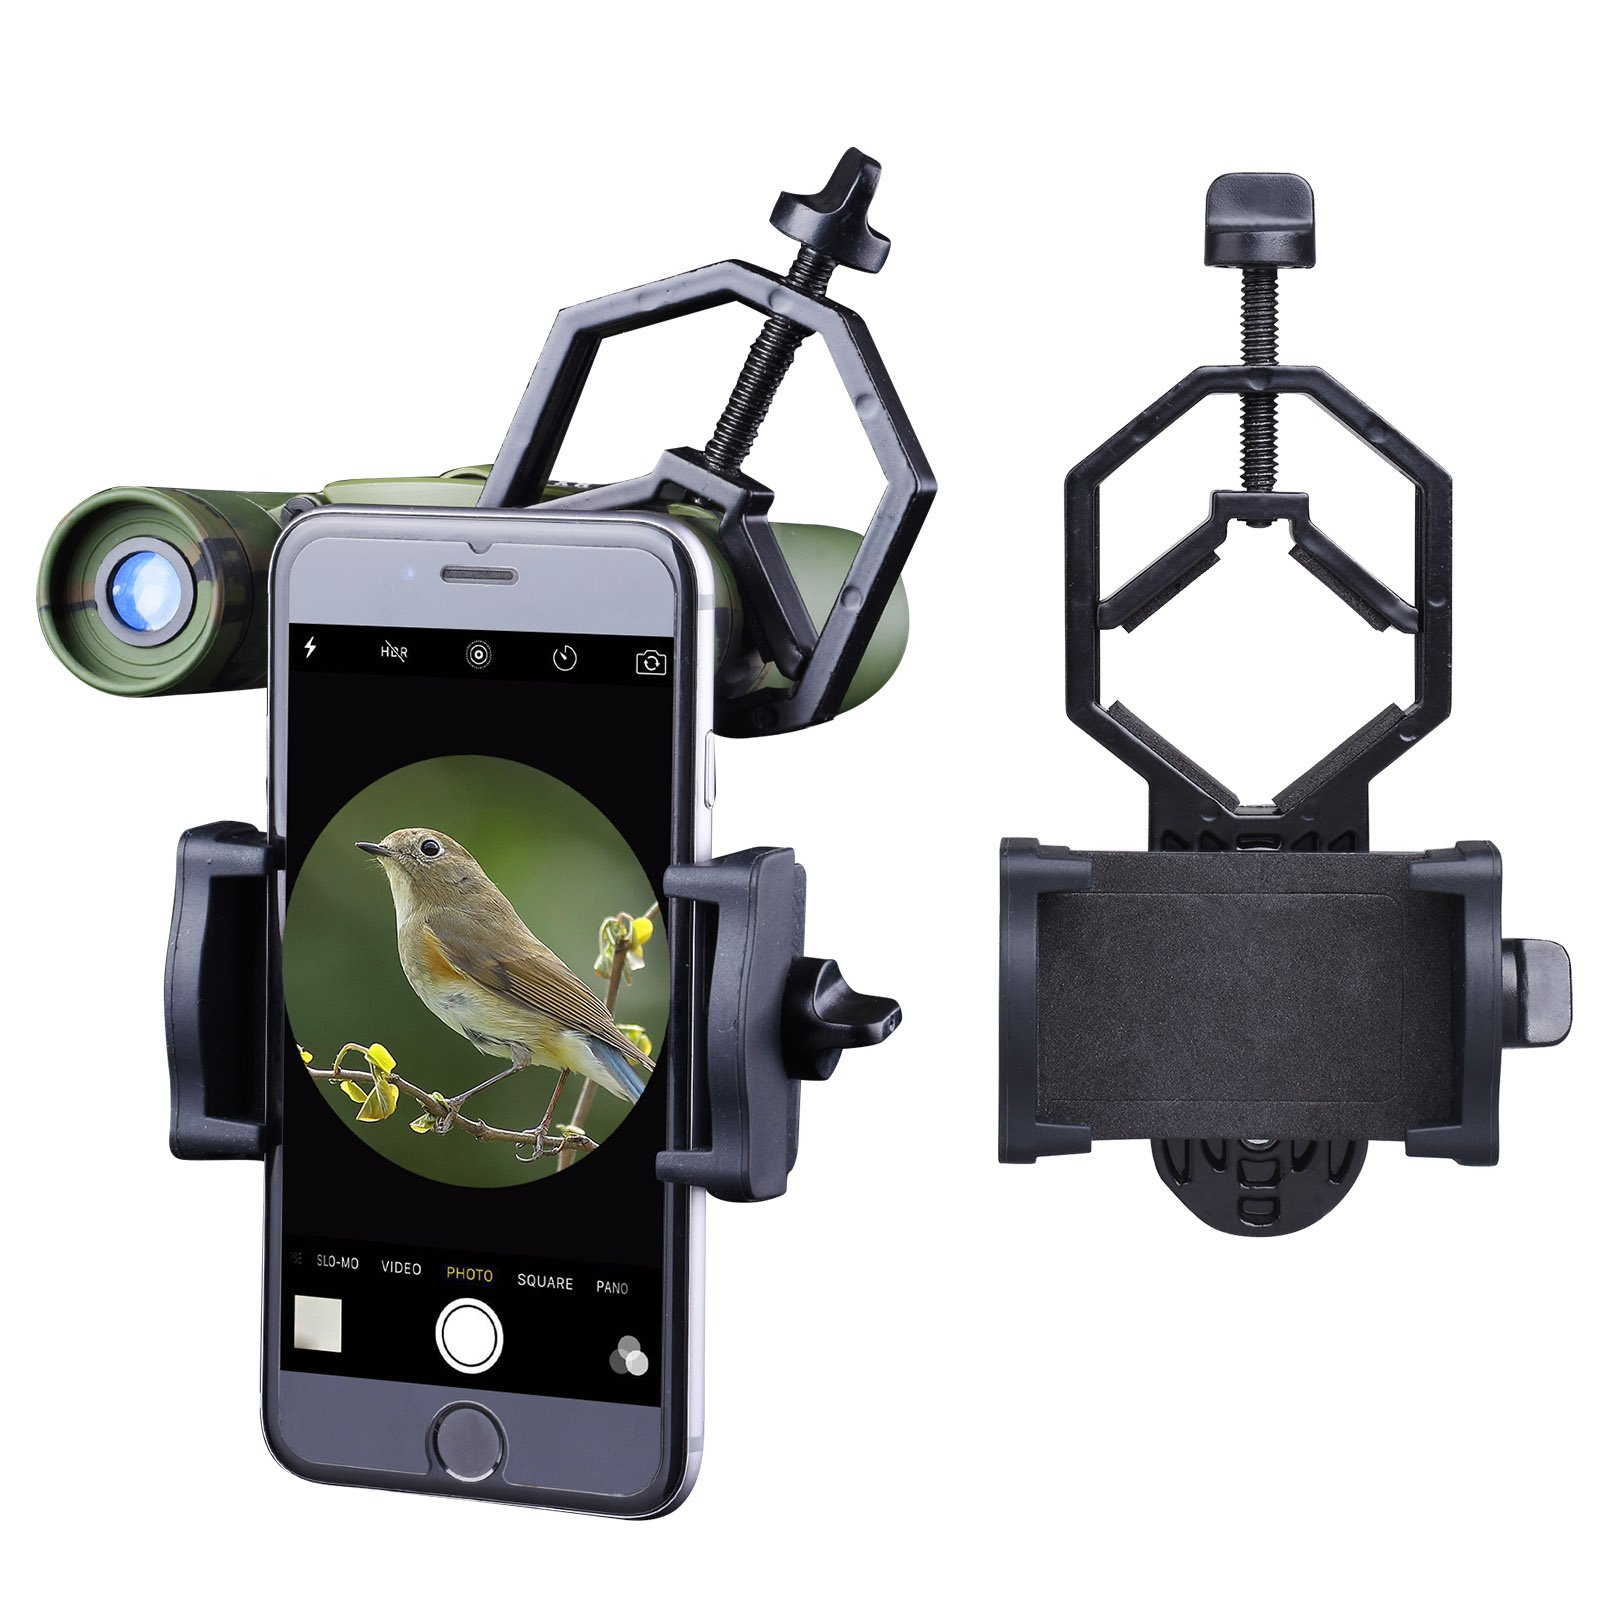 Universal Cell Phone Adapter Mount - Goodes Telescope Phone Adapter Compatible with Binocular Monocular Microscope Spotting Scope Mount for iPhone and Smartphones (Telescope Phone Adapter)